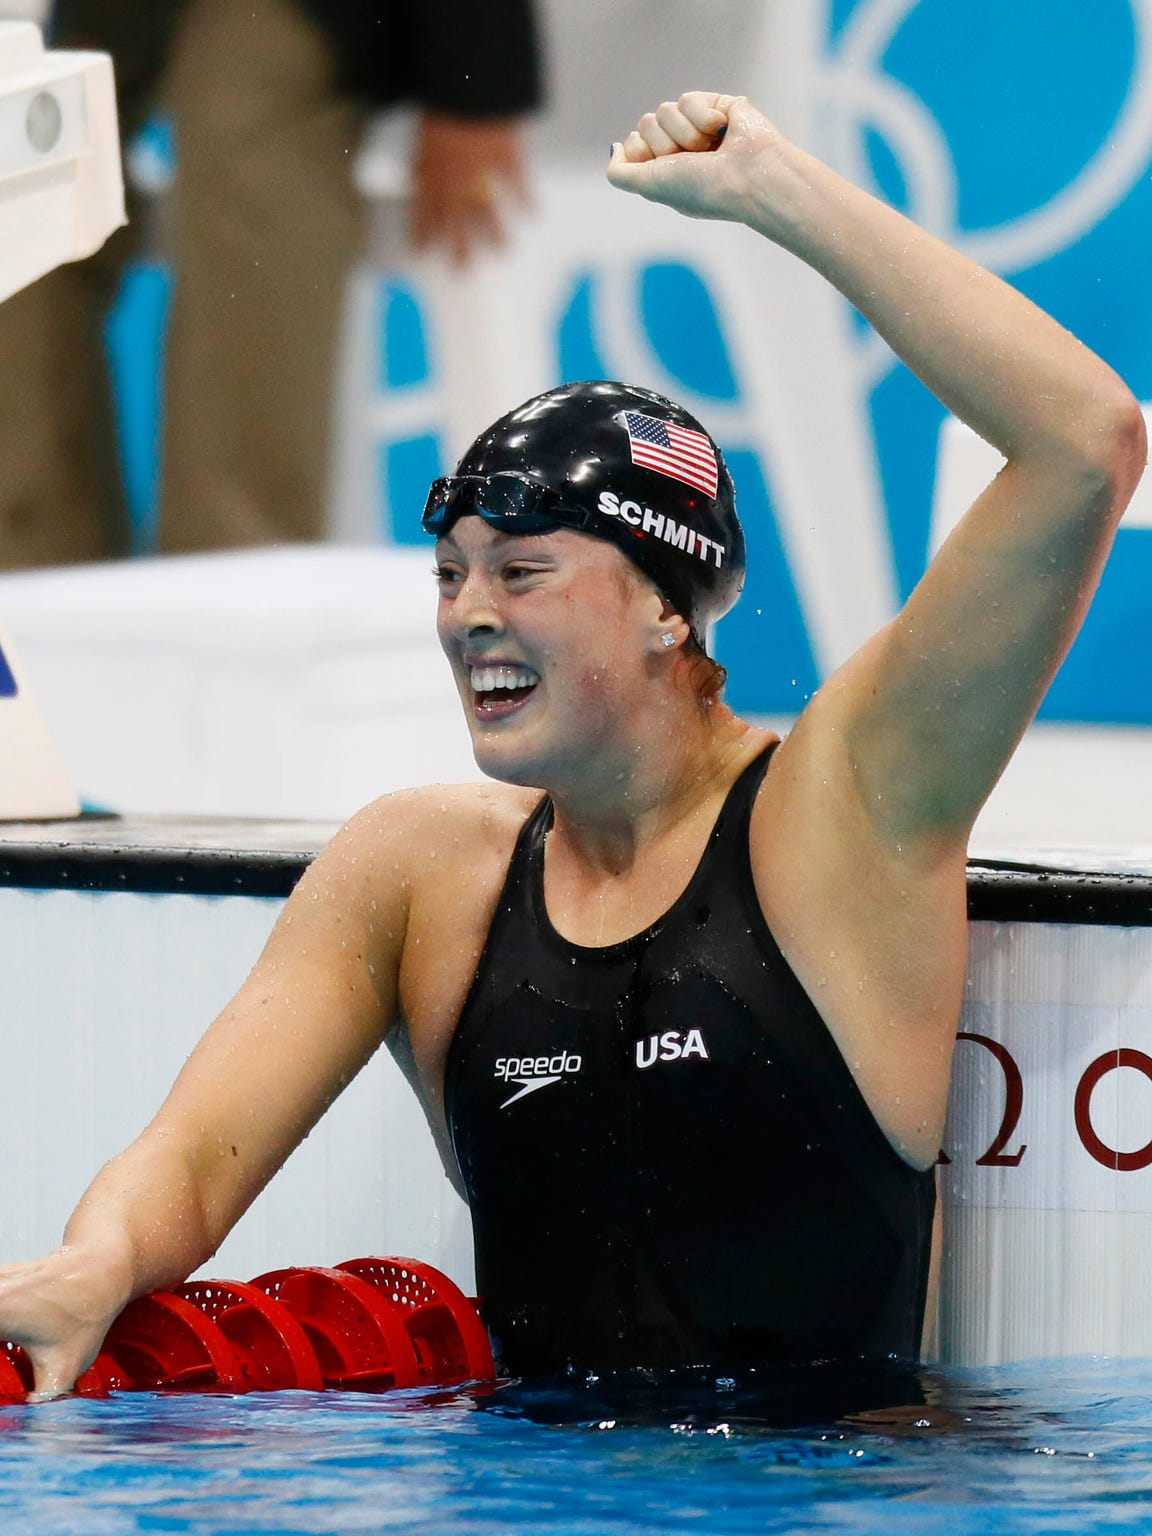 U.S. Olympics swimmer Allison Schmitt celebrates after